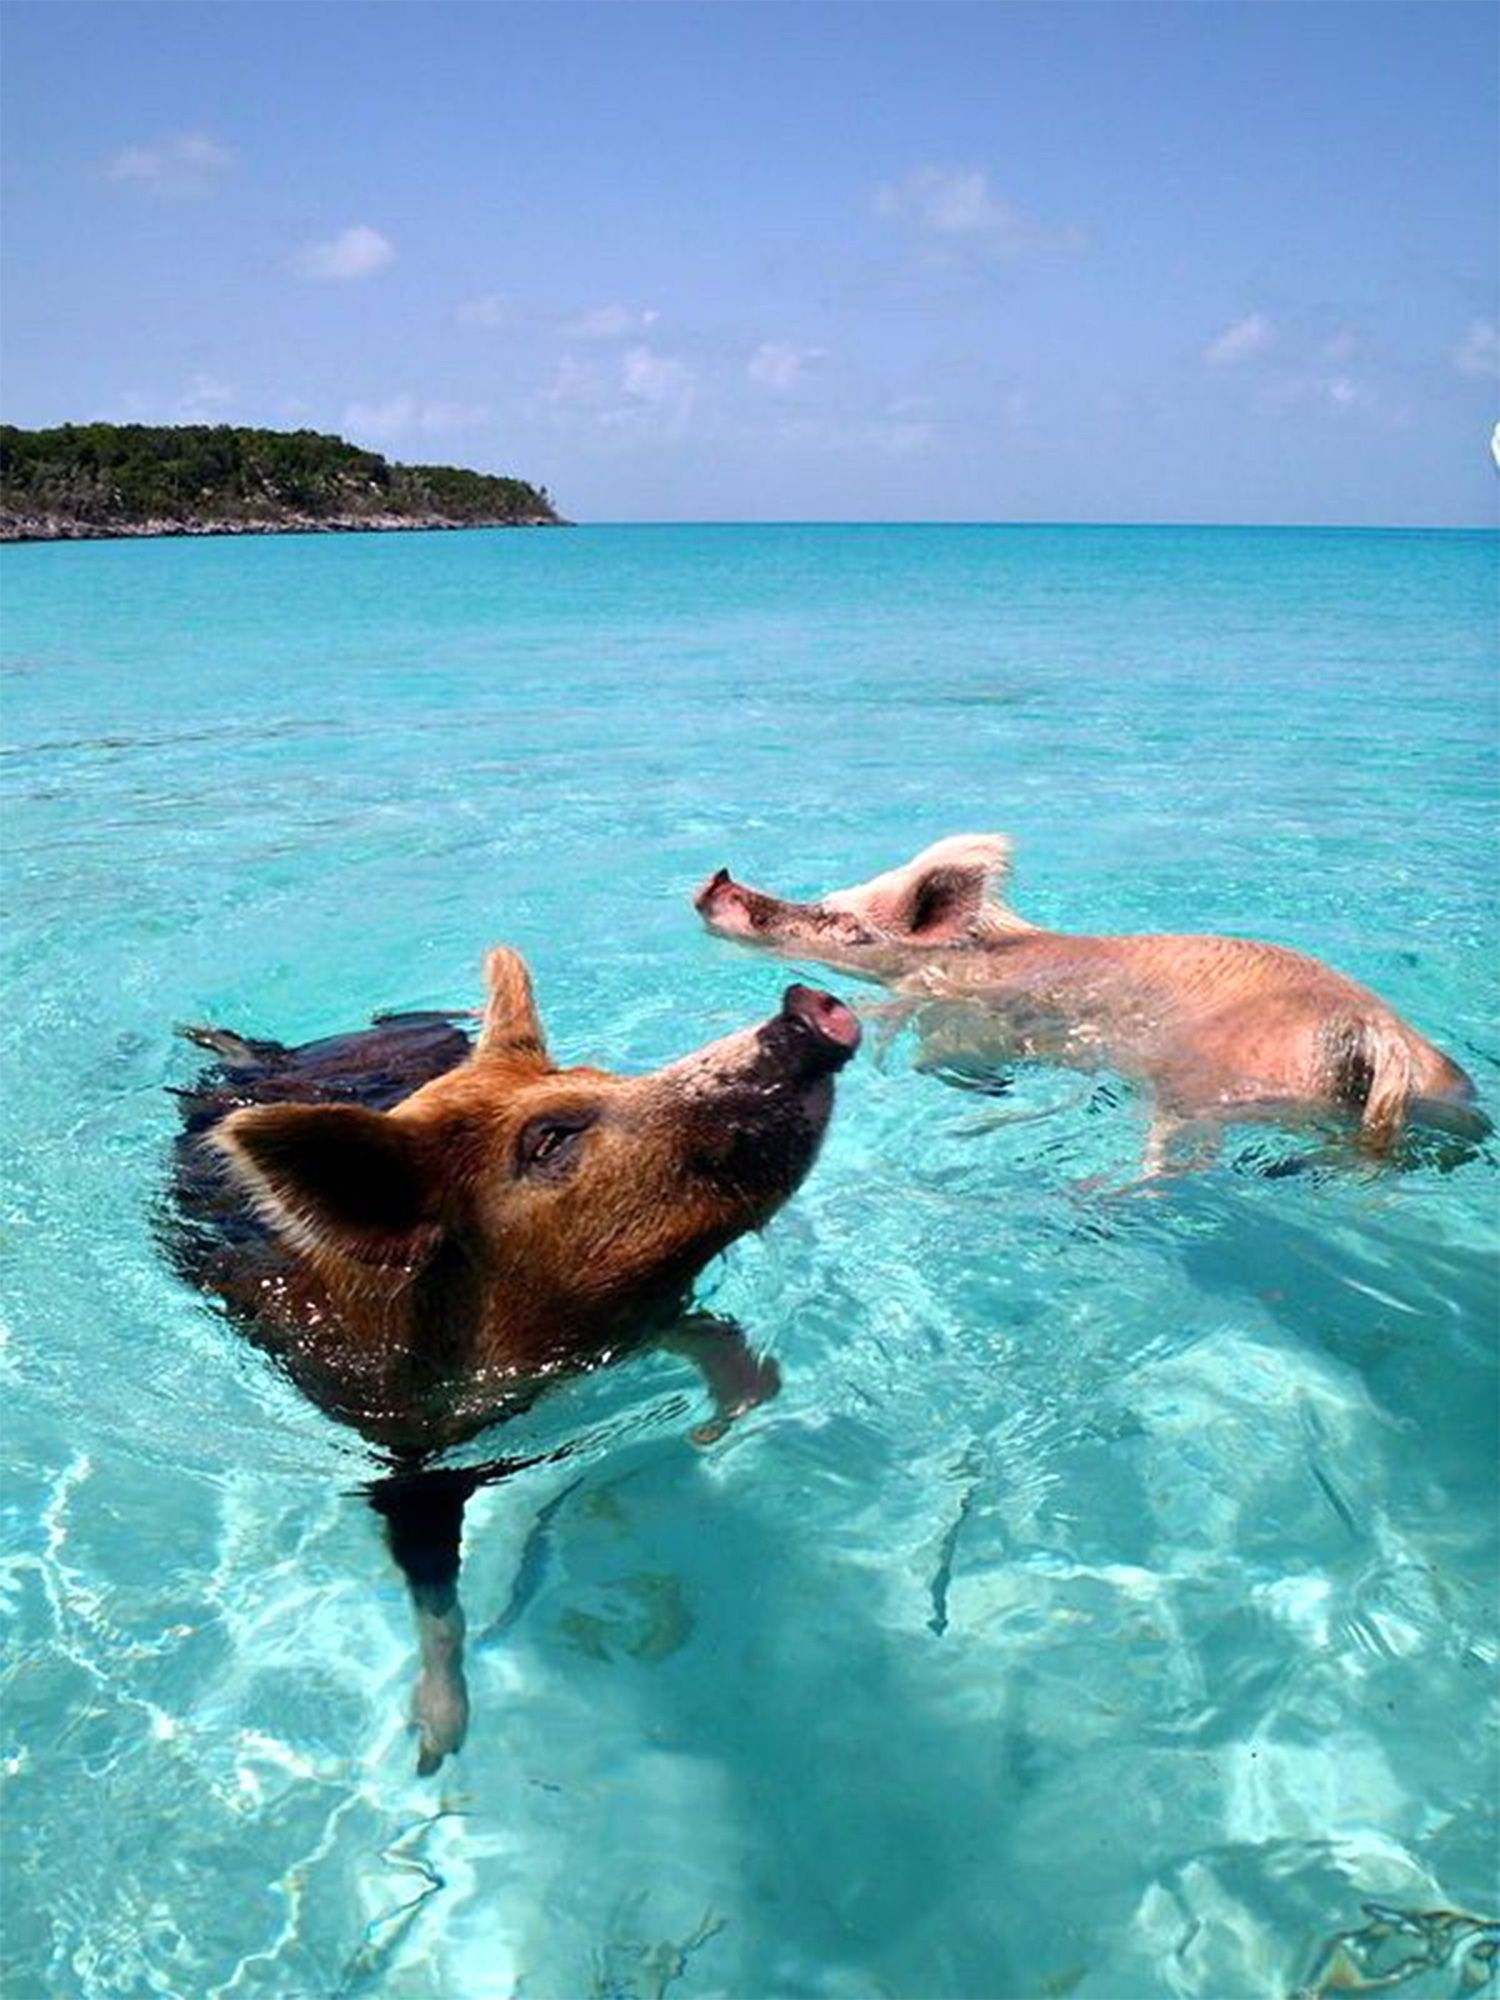 Pig Island Bahamas Go Swimming With The Pigs Like In Bachelor